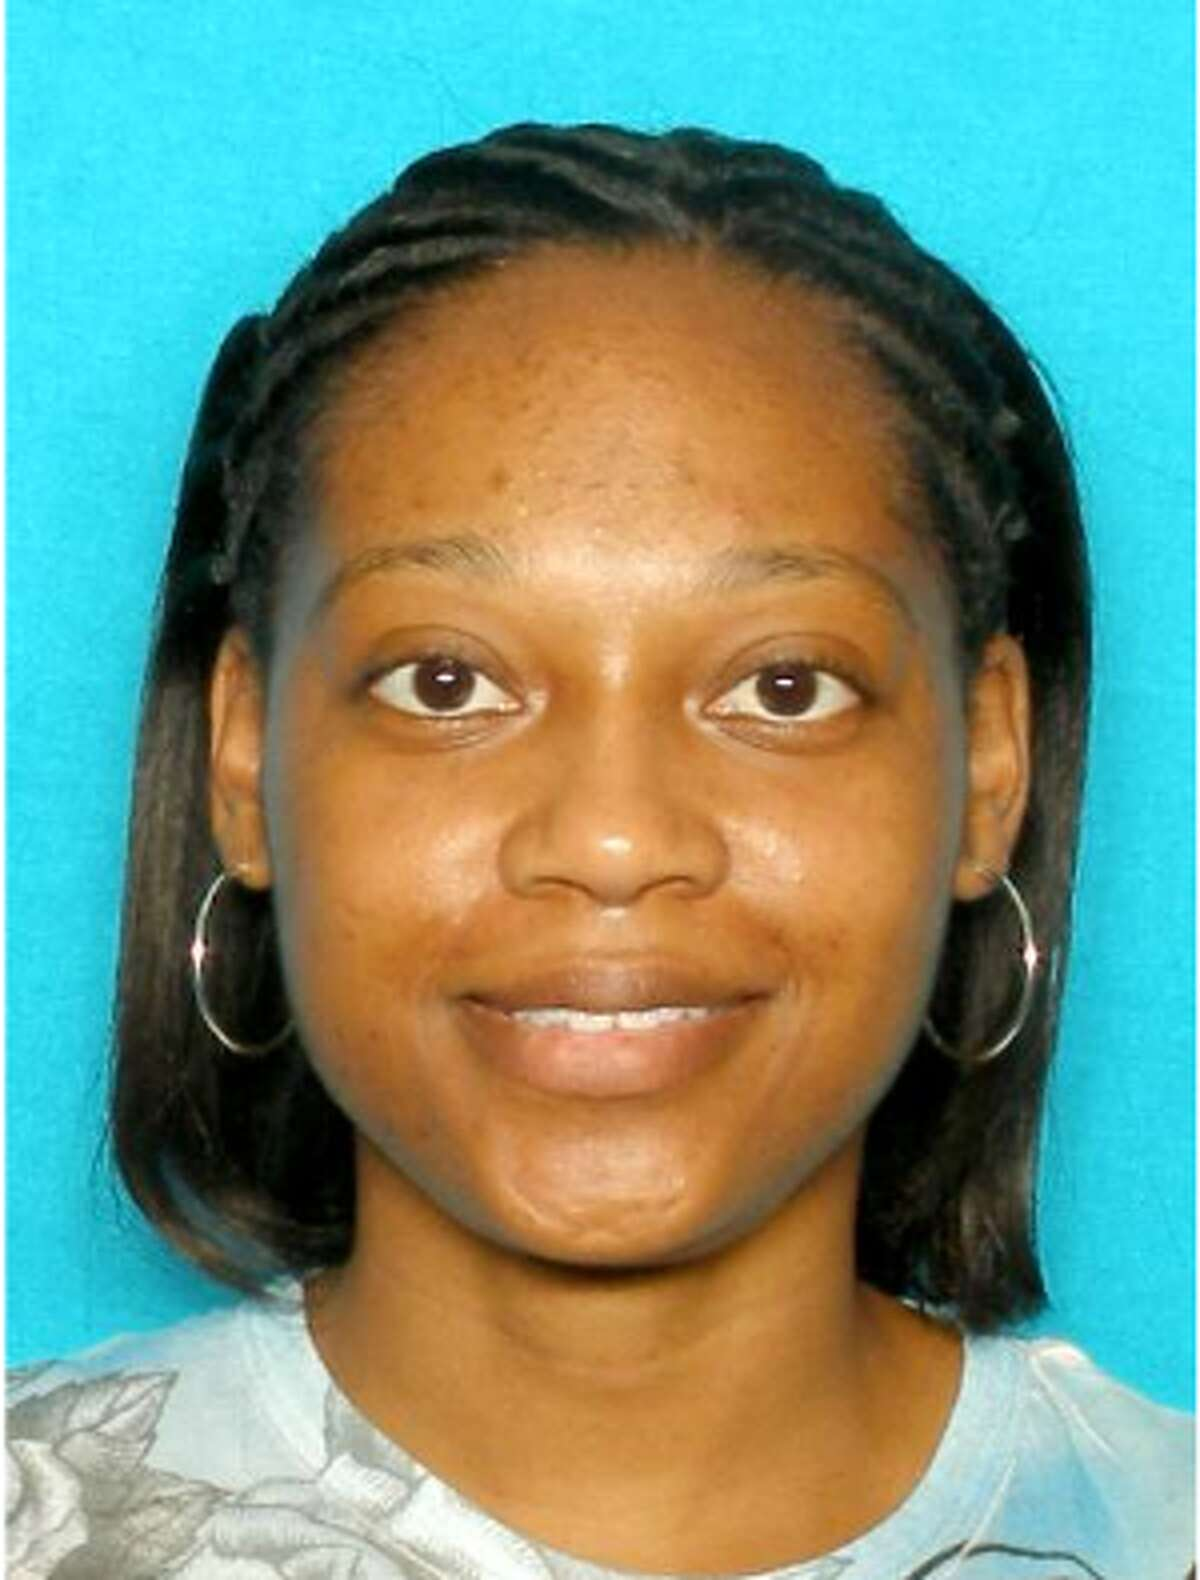 Authorities are hunting for Bobbi White as a suspect in the disappearance of a 7-year-old girl.